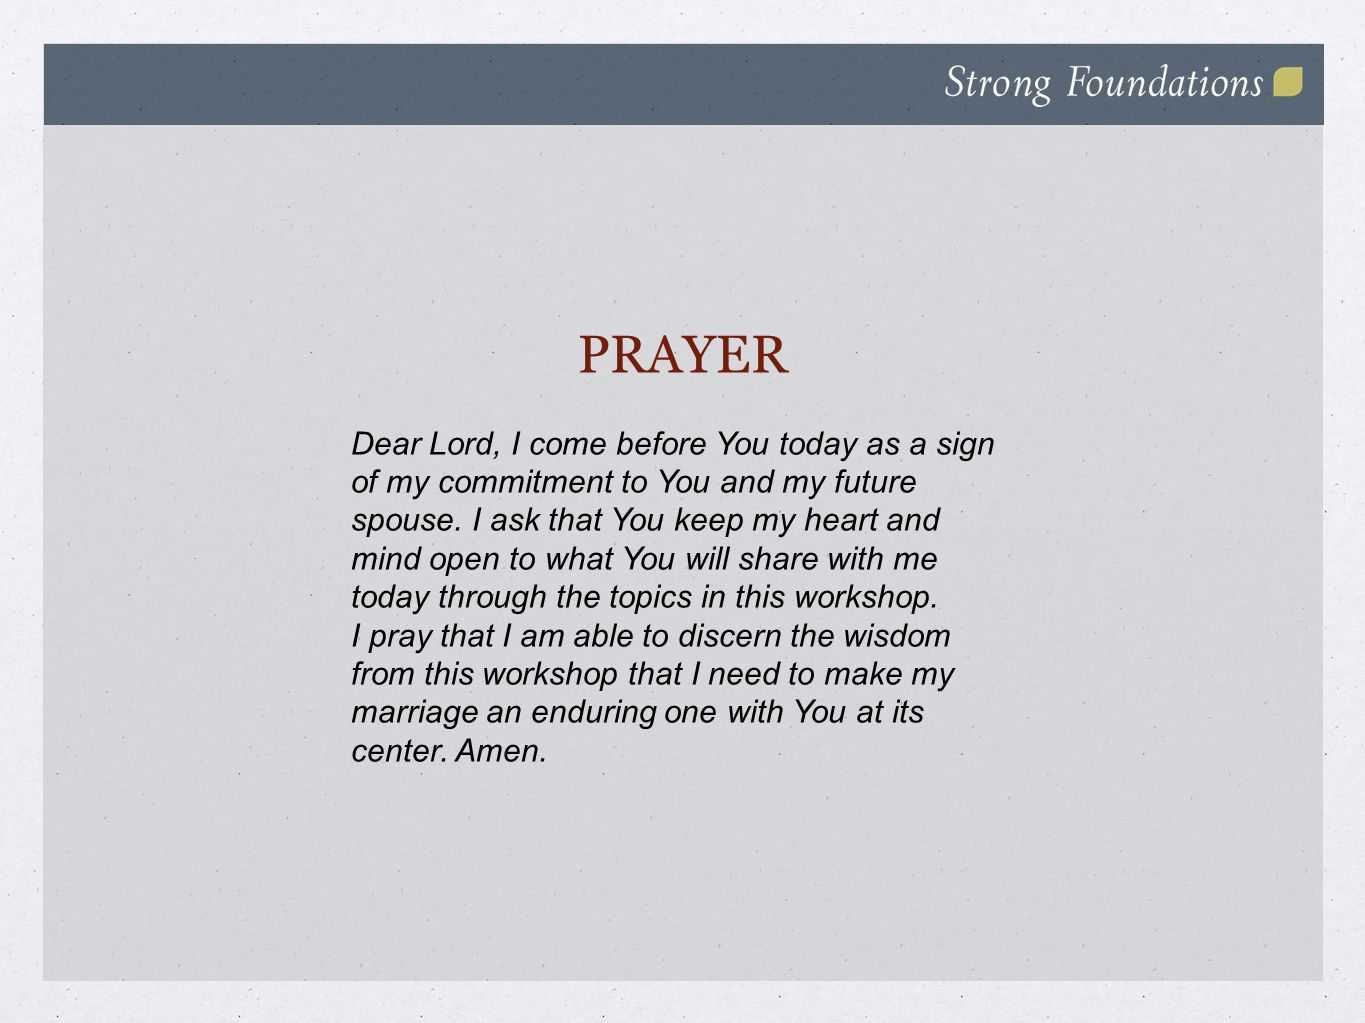 PRAYER Dear Lord, I come before You today as a sign of my commitment to You and my future spouse.